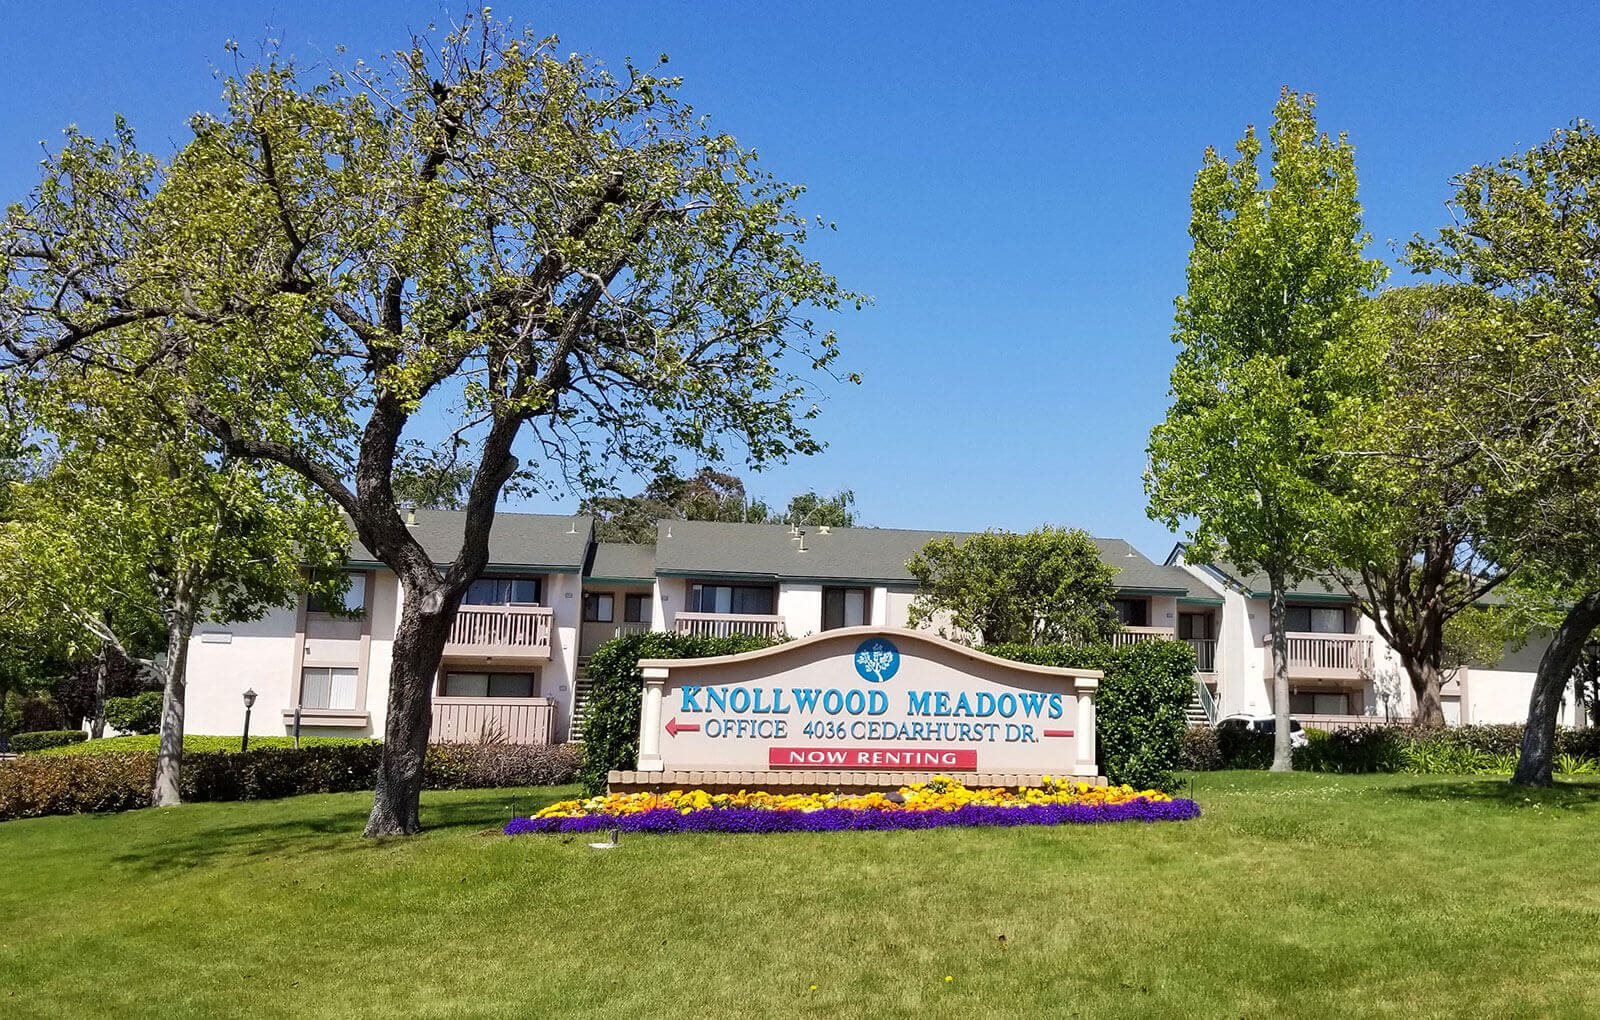 Appearance Of Main Entry at Knollwood Meadows Apartments, California, 93455